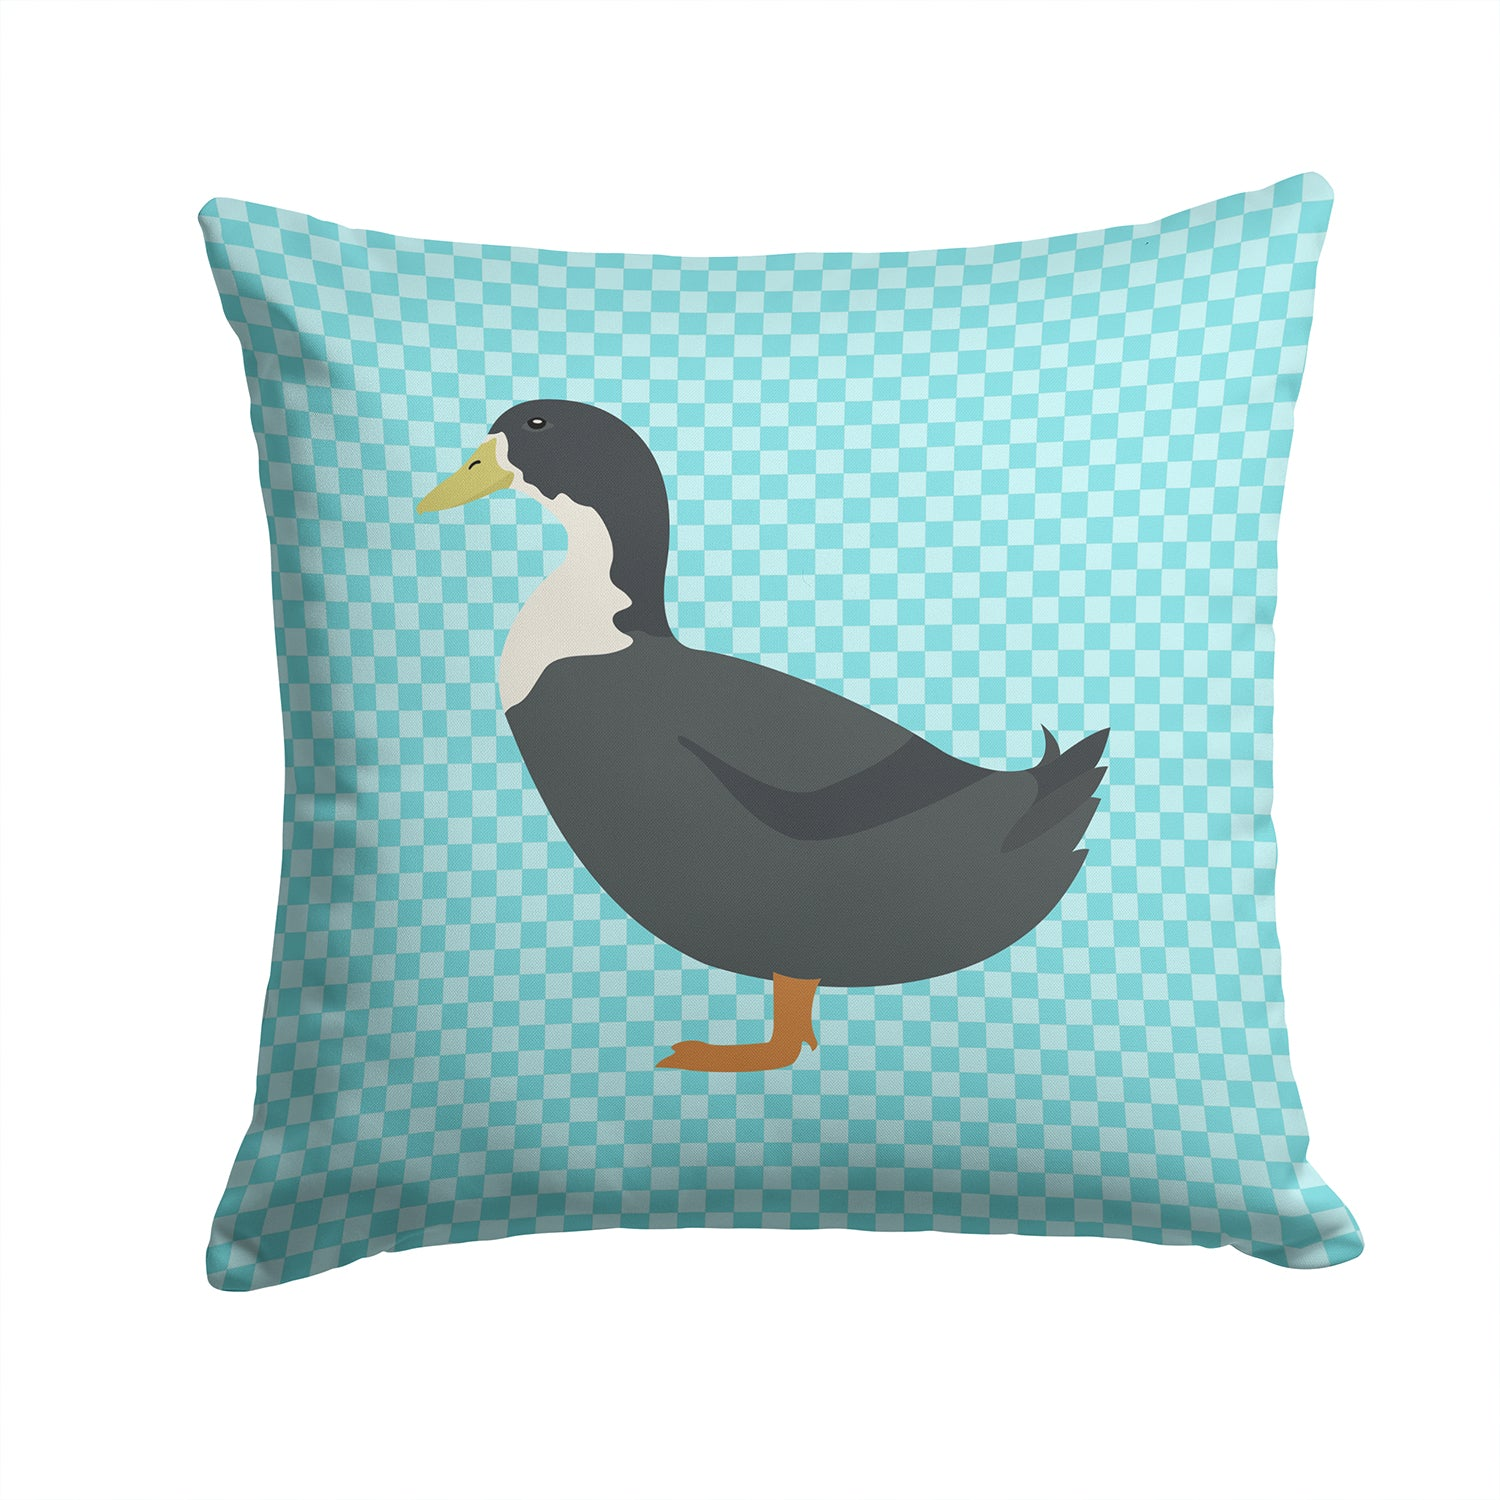 Blue Swedish Duck Blue Check Fabric Decorative Pillow BB8036PW1414 by Caroline's Treasures